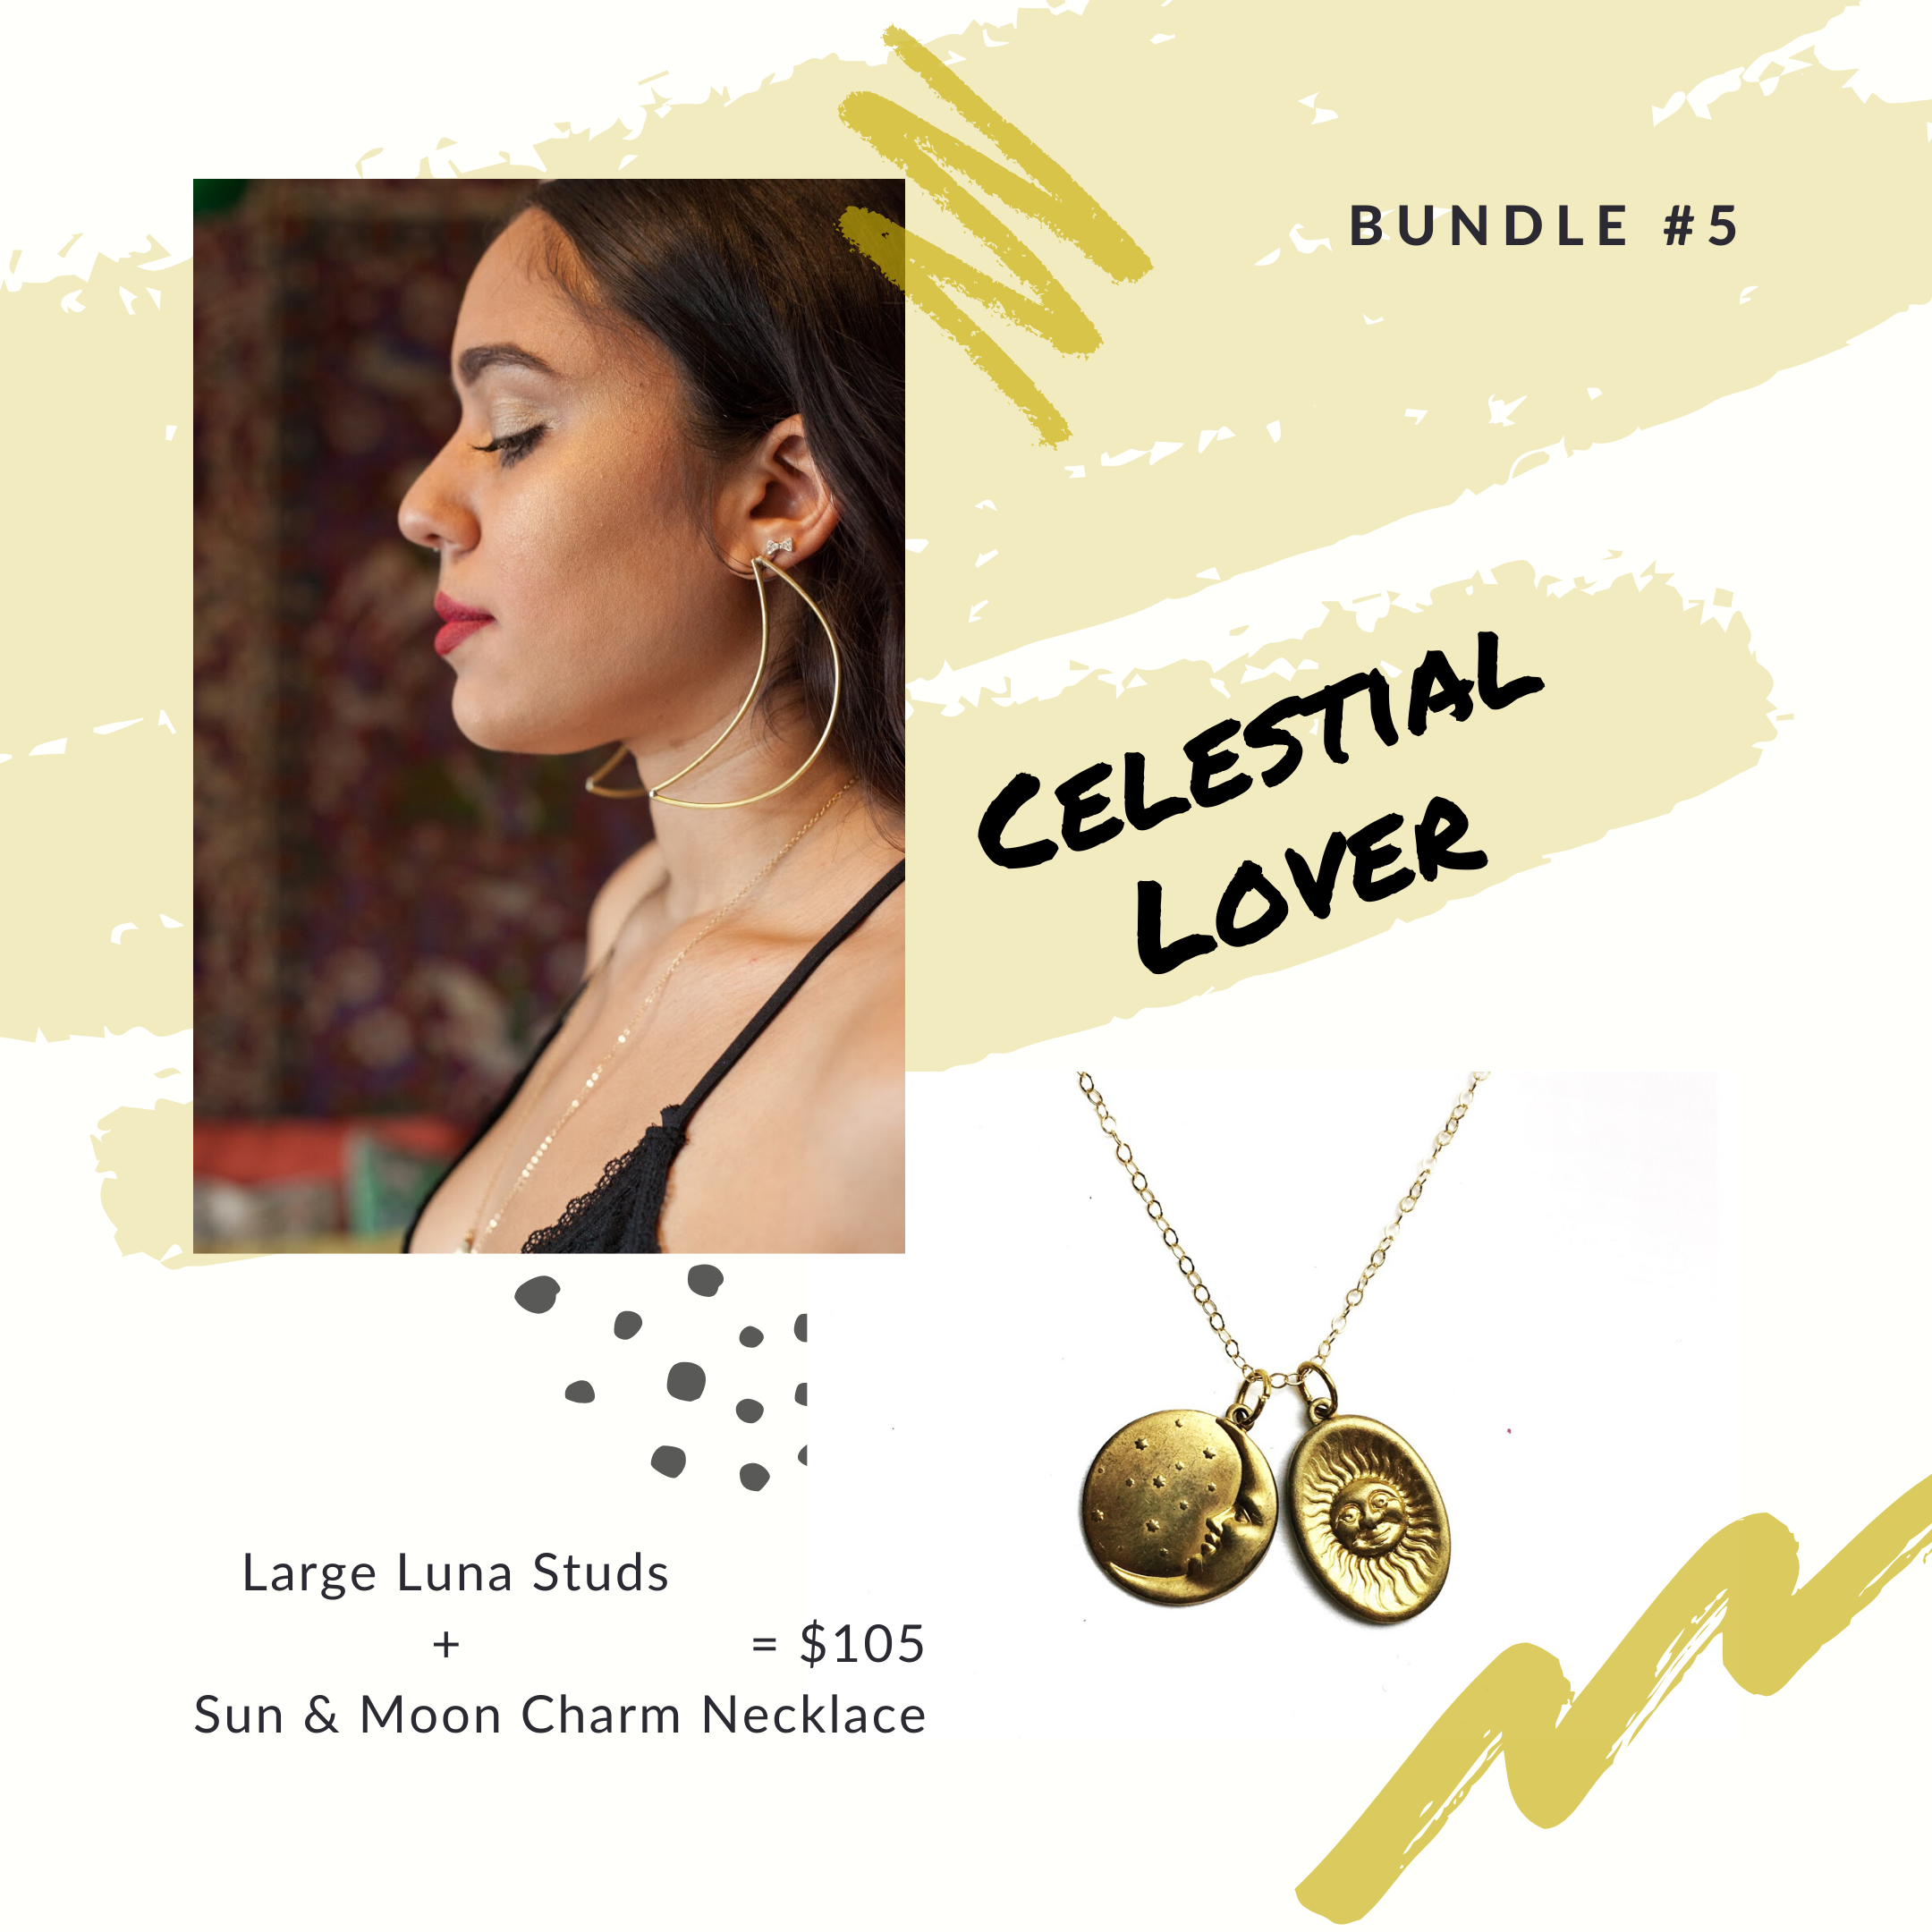 Limited edition bundles Get your favorite Luni layered pairs Each bundle comes with an accompanying Carnelian and Free Shipping. The Large Luna Studs is made of Brass with Sterling Silver posts. The Sun and Moon Charm Necklace are made with a Gold Filled chain and Brass pendants plated in 14k Gold. We want to introduce our Luni Bundles! Every Luni piece was created to be layered while also being a powerful stand-alone piece. With our Luni bundles, we wanted to pair up our faves by inspiration. T